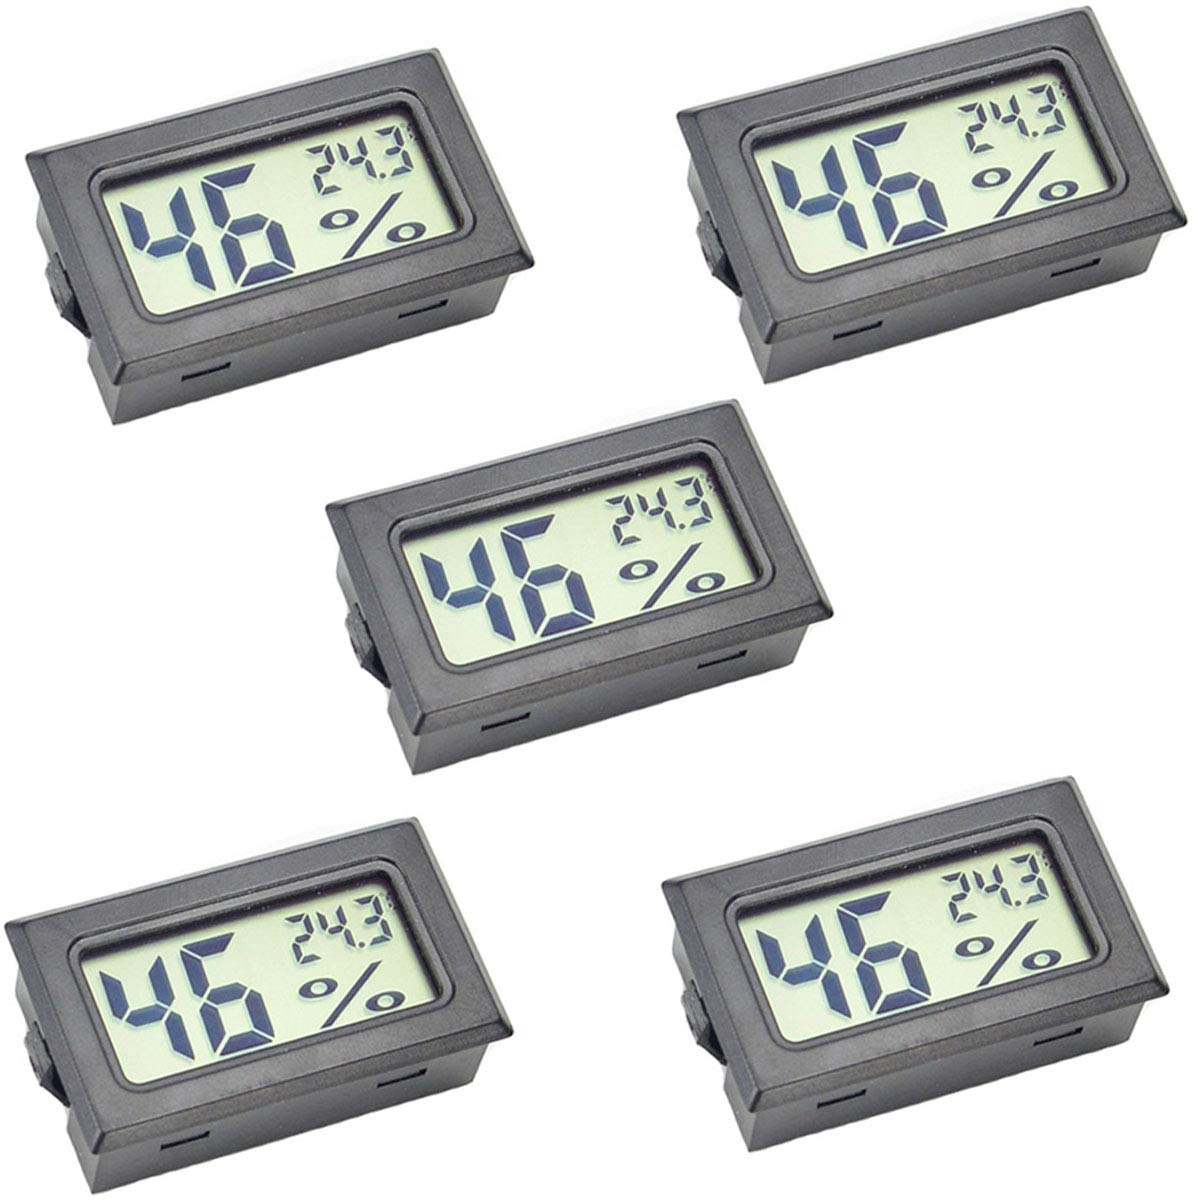 JEDEW 5-Pack Hygrometer Gauge Indoor Thermometer,Mini Digital LCD Monitor Temperature Outdoor Humidity Meter for Humidors Greenhouse Basement Cellar Closet, Measure in Fahrenheit (℉) (5 Pack)